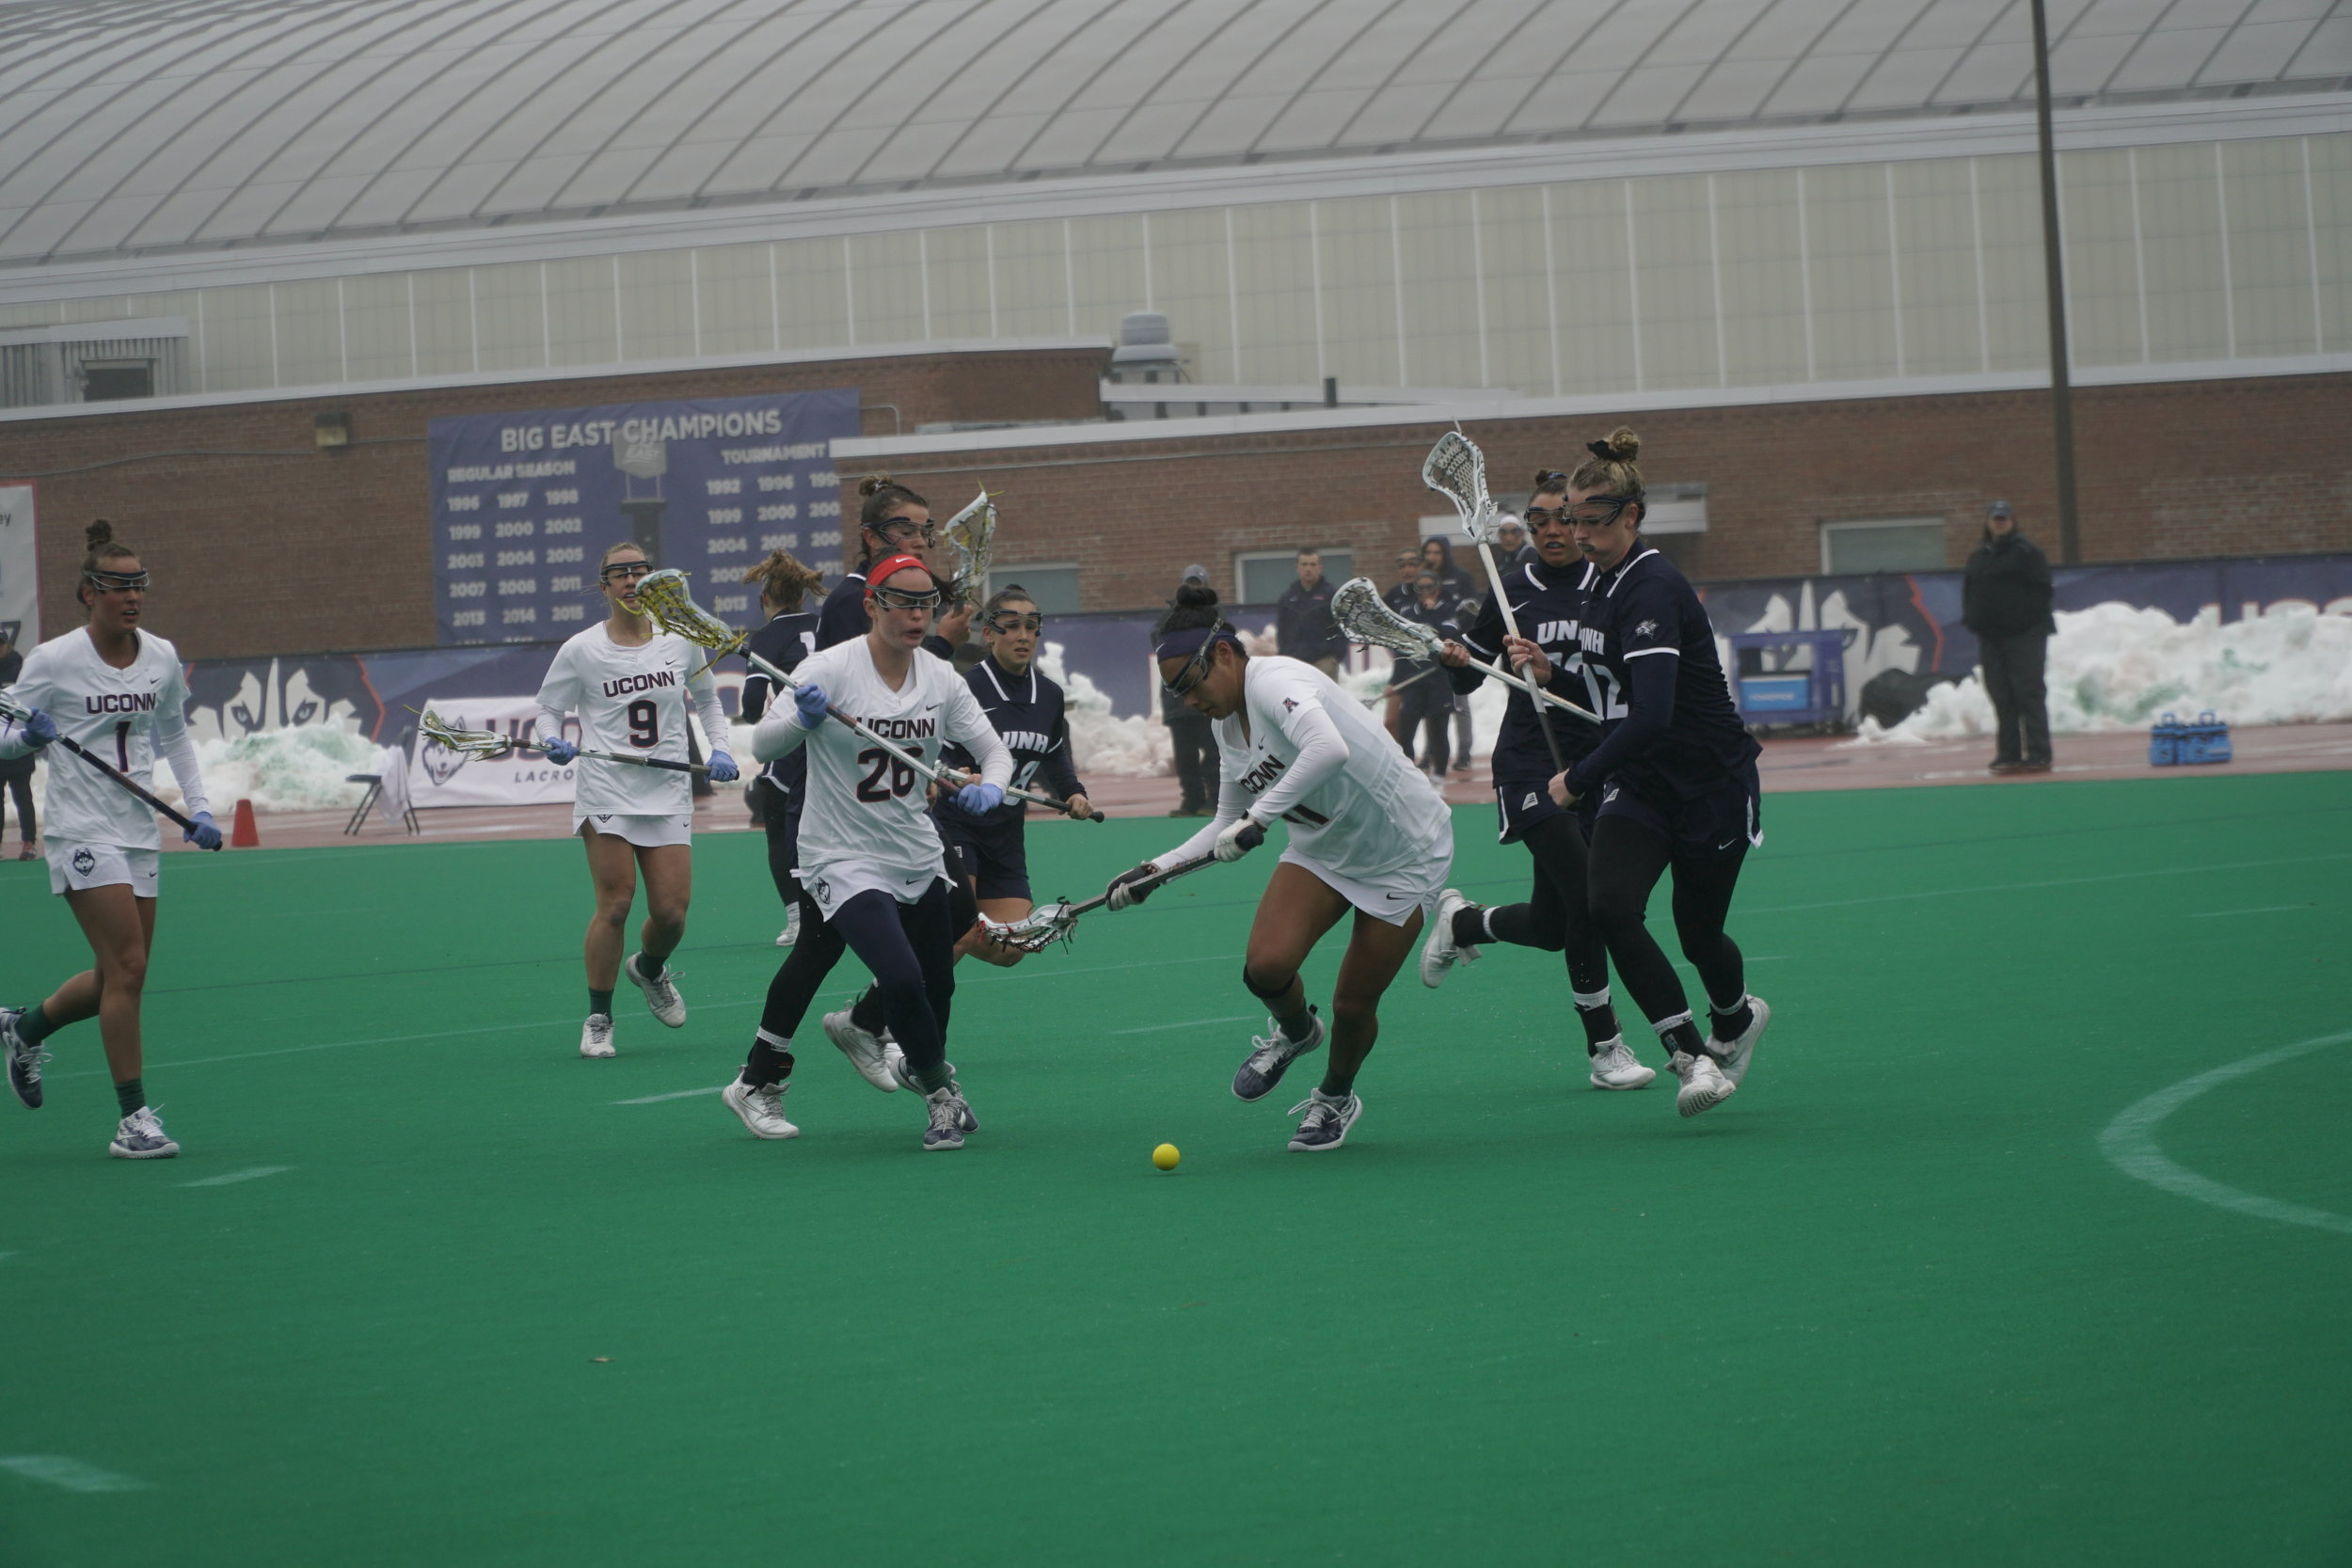 The Huskies lost to the UNH Wildcats 12-13. Their next home game is on 3/13 against University of Albany. (Photo by Eric Wang/The Daily Campus)